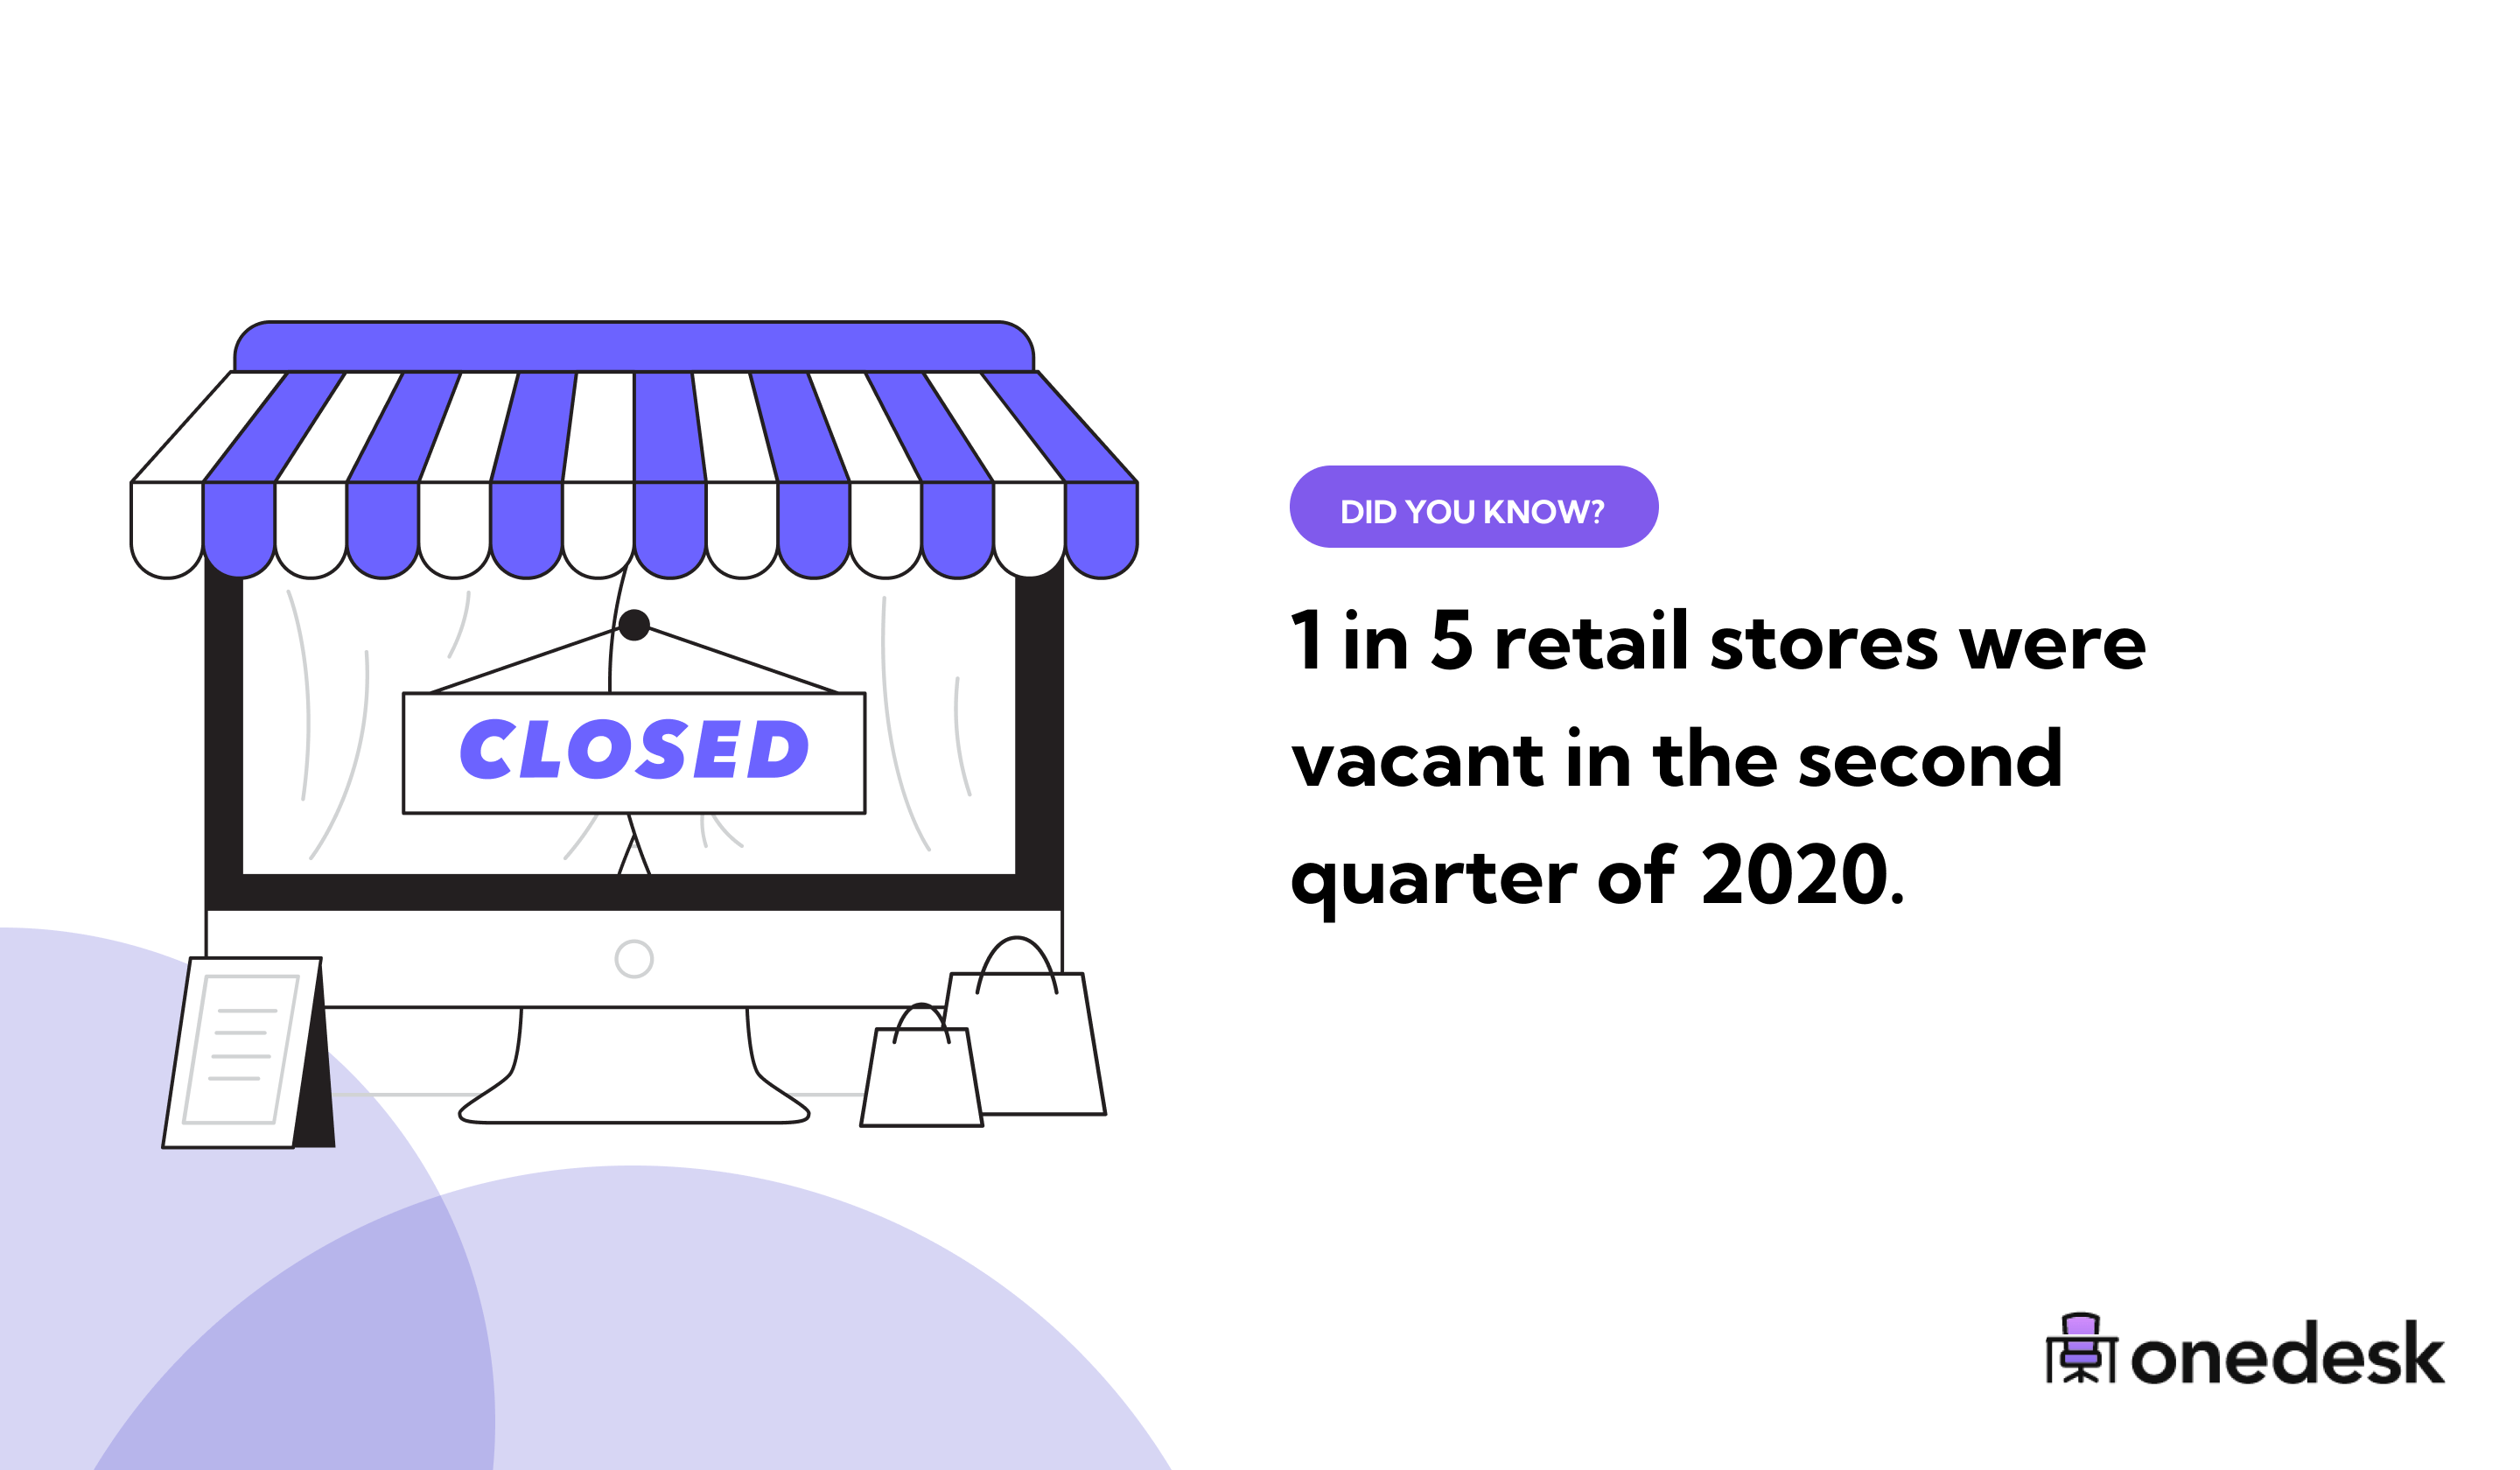 20% of retail stores were vacant in 2020